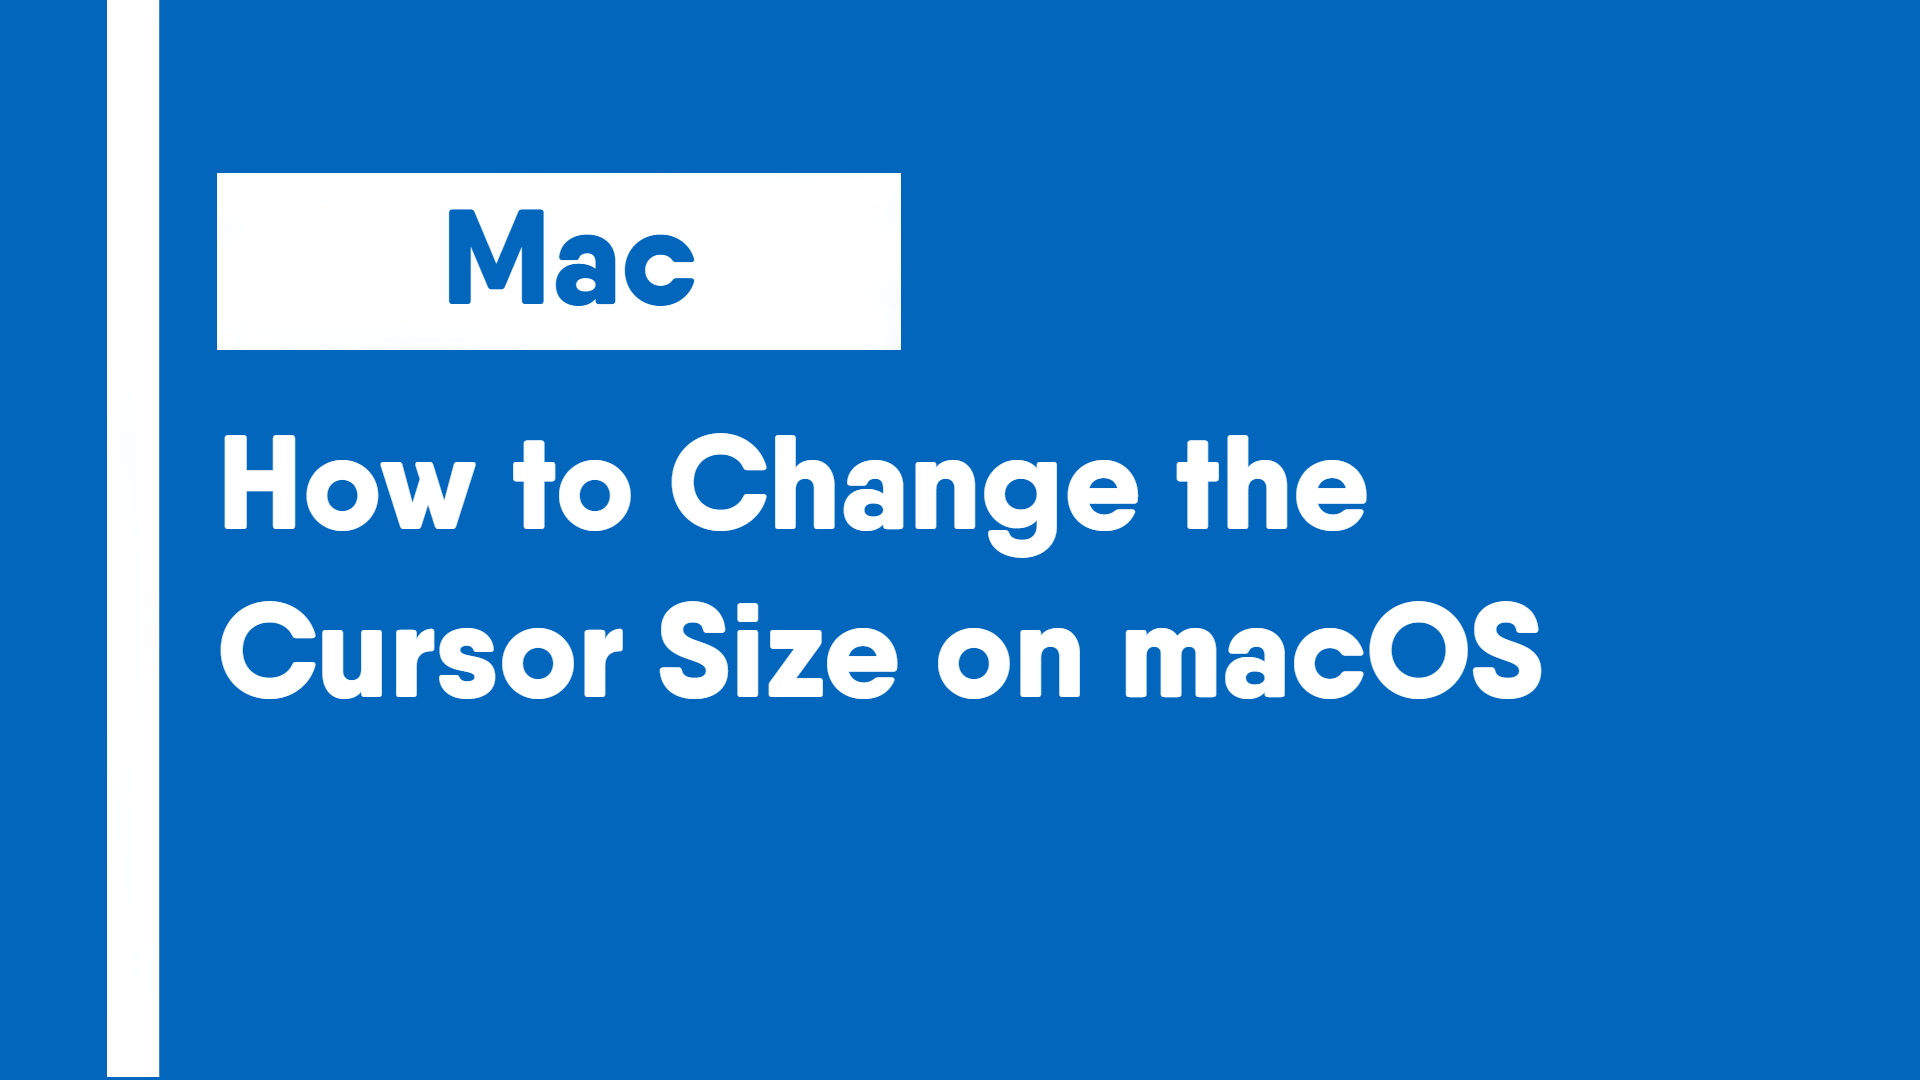 How to Change the Cursor Size on macOS